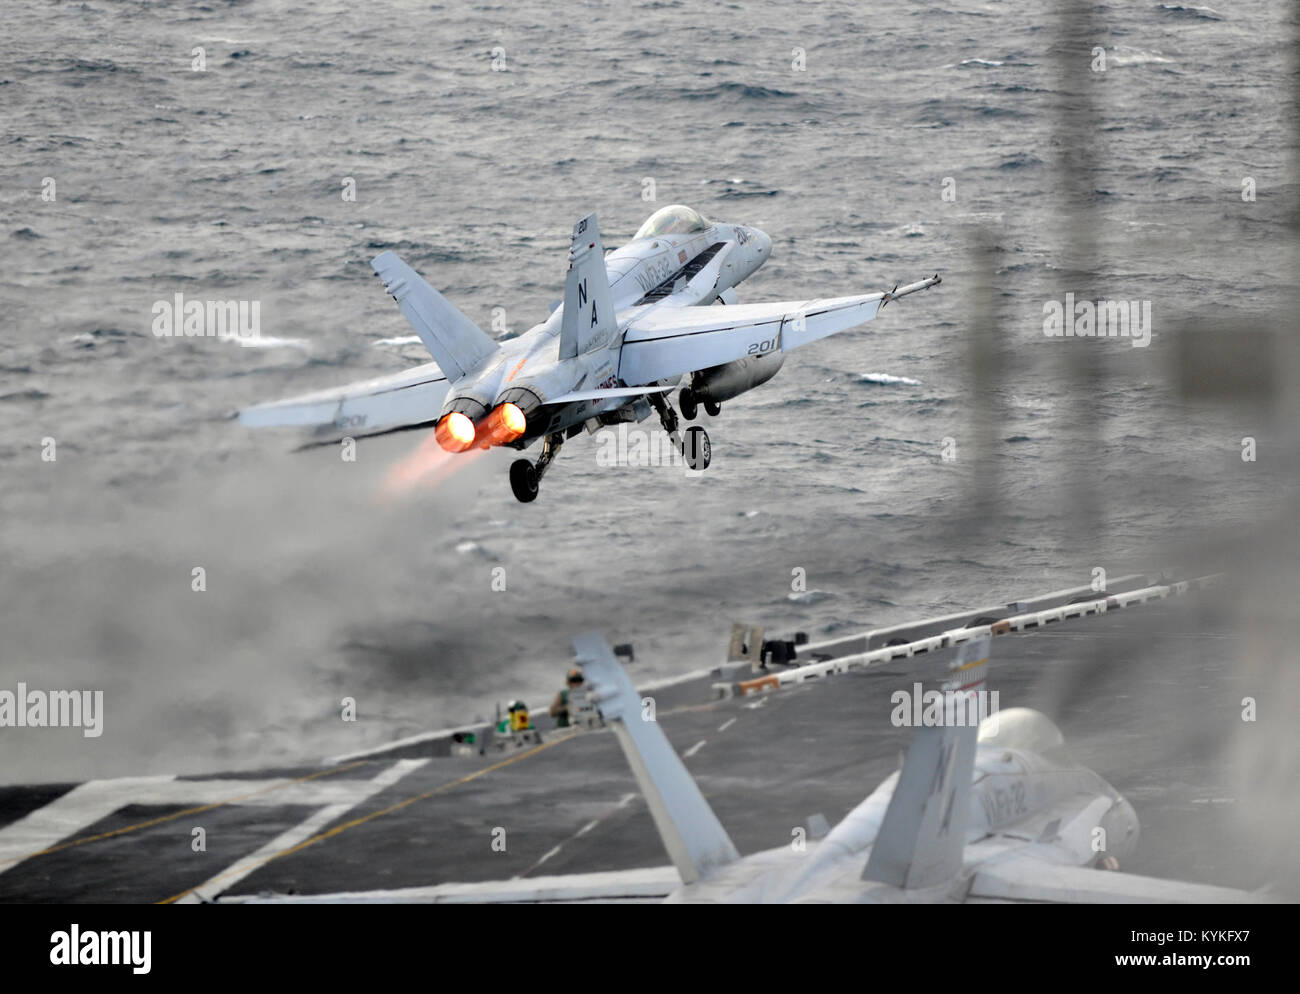 171111-N-KO563-1237 de l'OCÉAN PACIFIQUE (nov. 11, 2017) Un F/A-18E Super Hornet, affecté à la Photo Stock